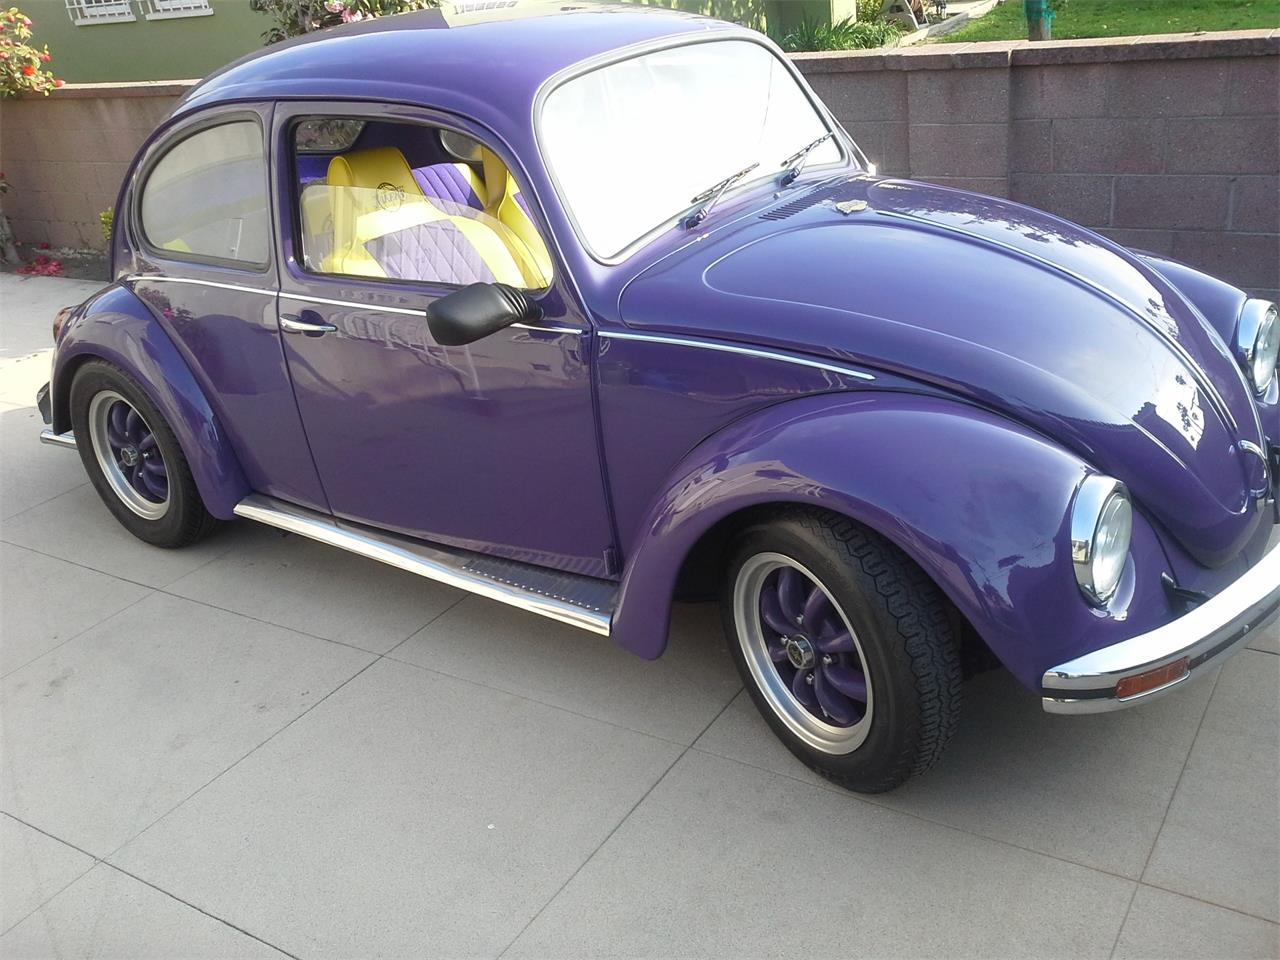 Large Picture of Classic 1971 Volkswagen Beetle located in California - $8,500.00 Offered by a Private Seller - DP46